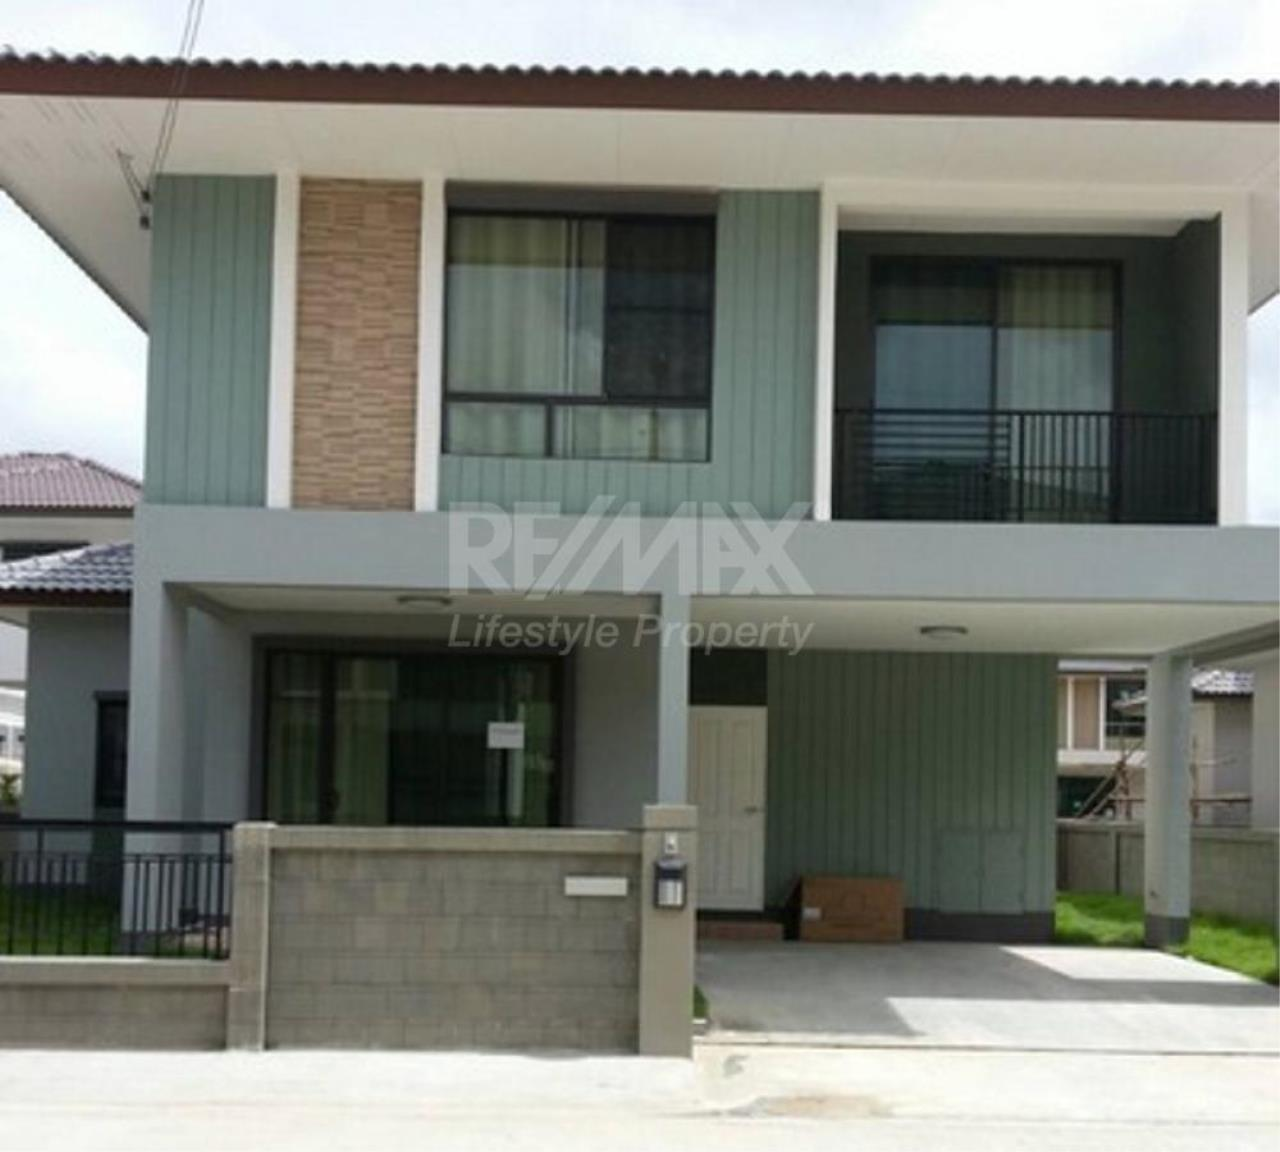 RE/MAX LifeStyle Property Agency's House Suvarnabhumi 3